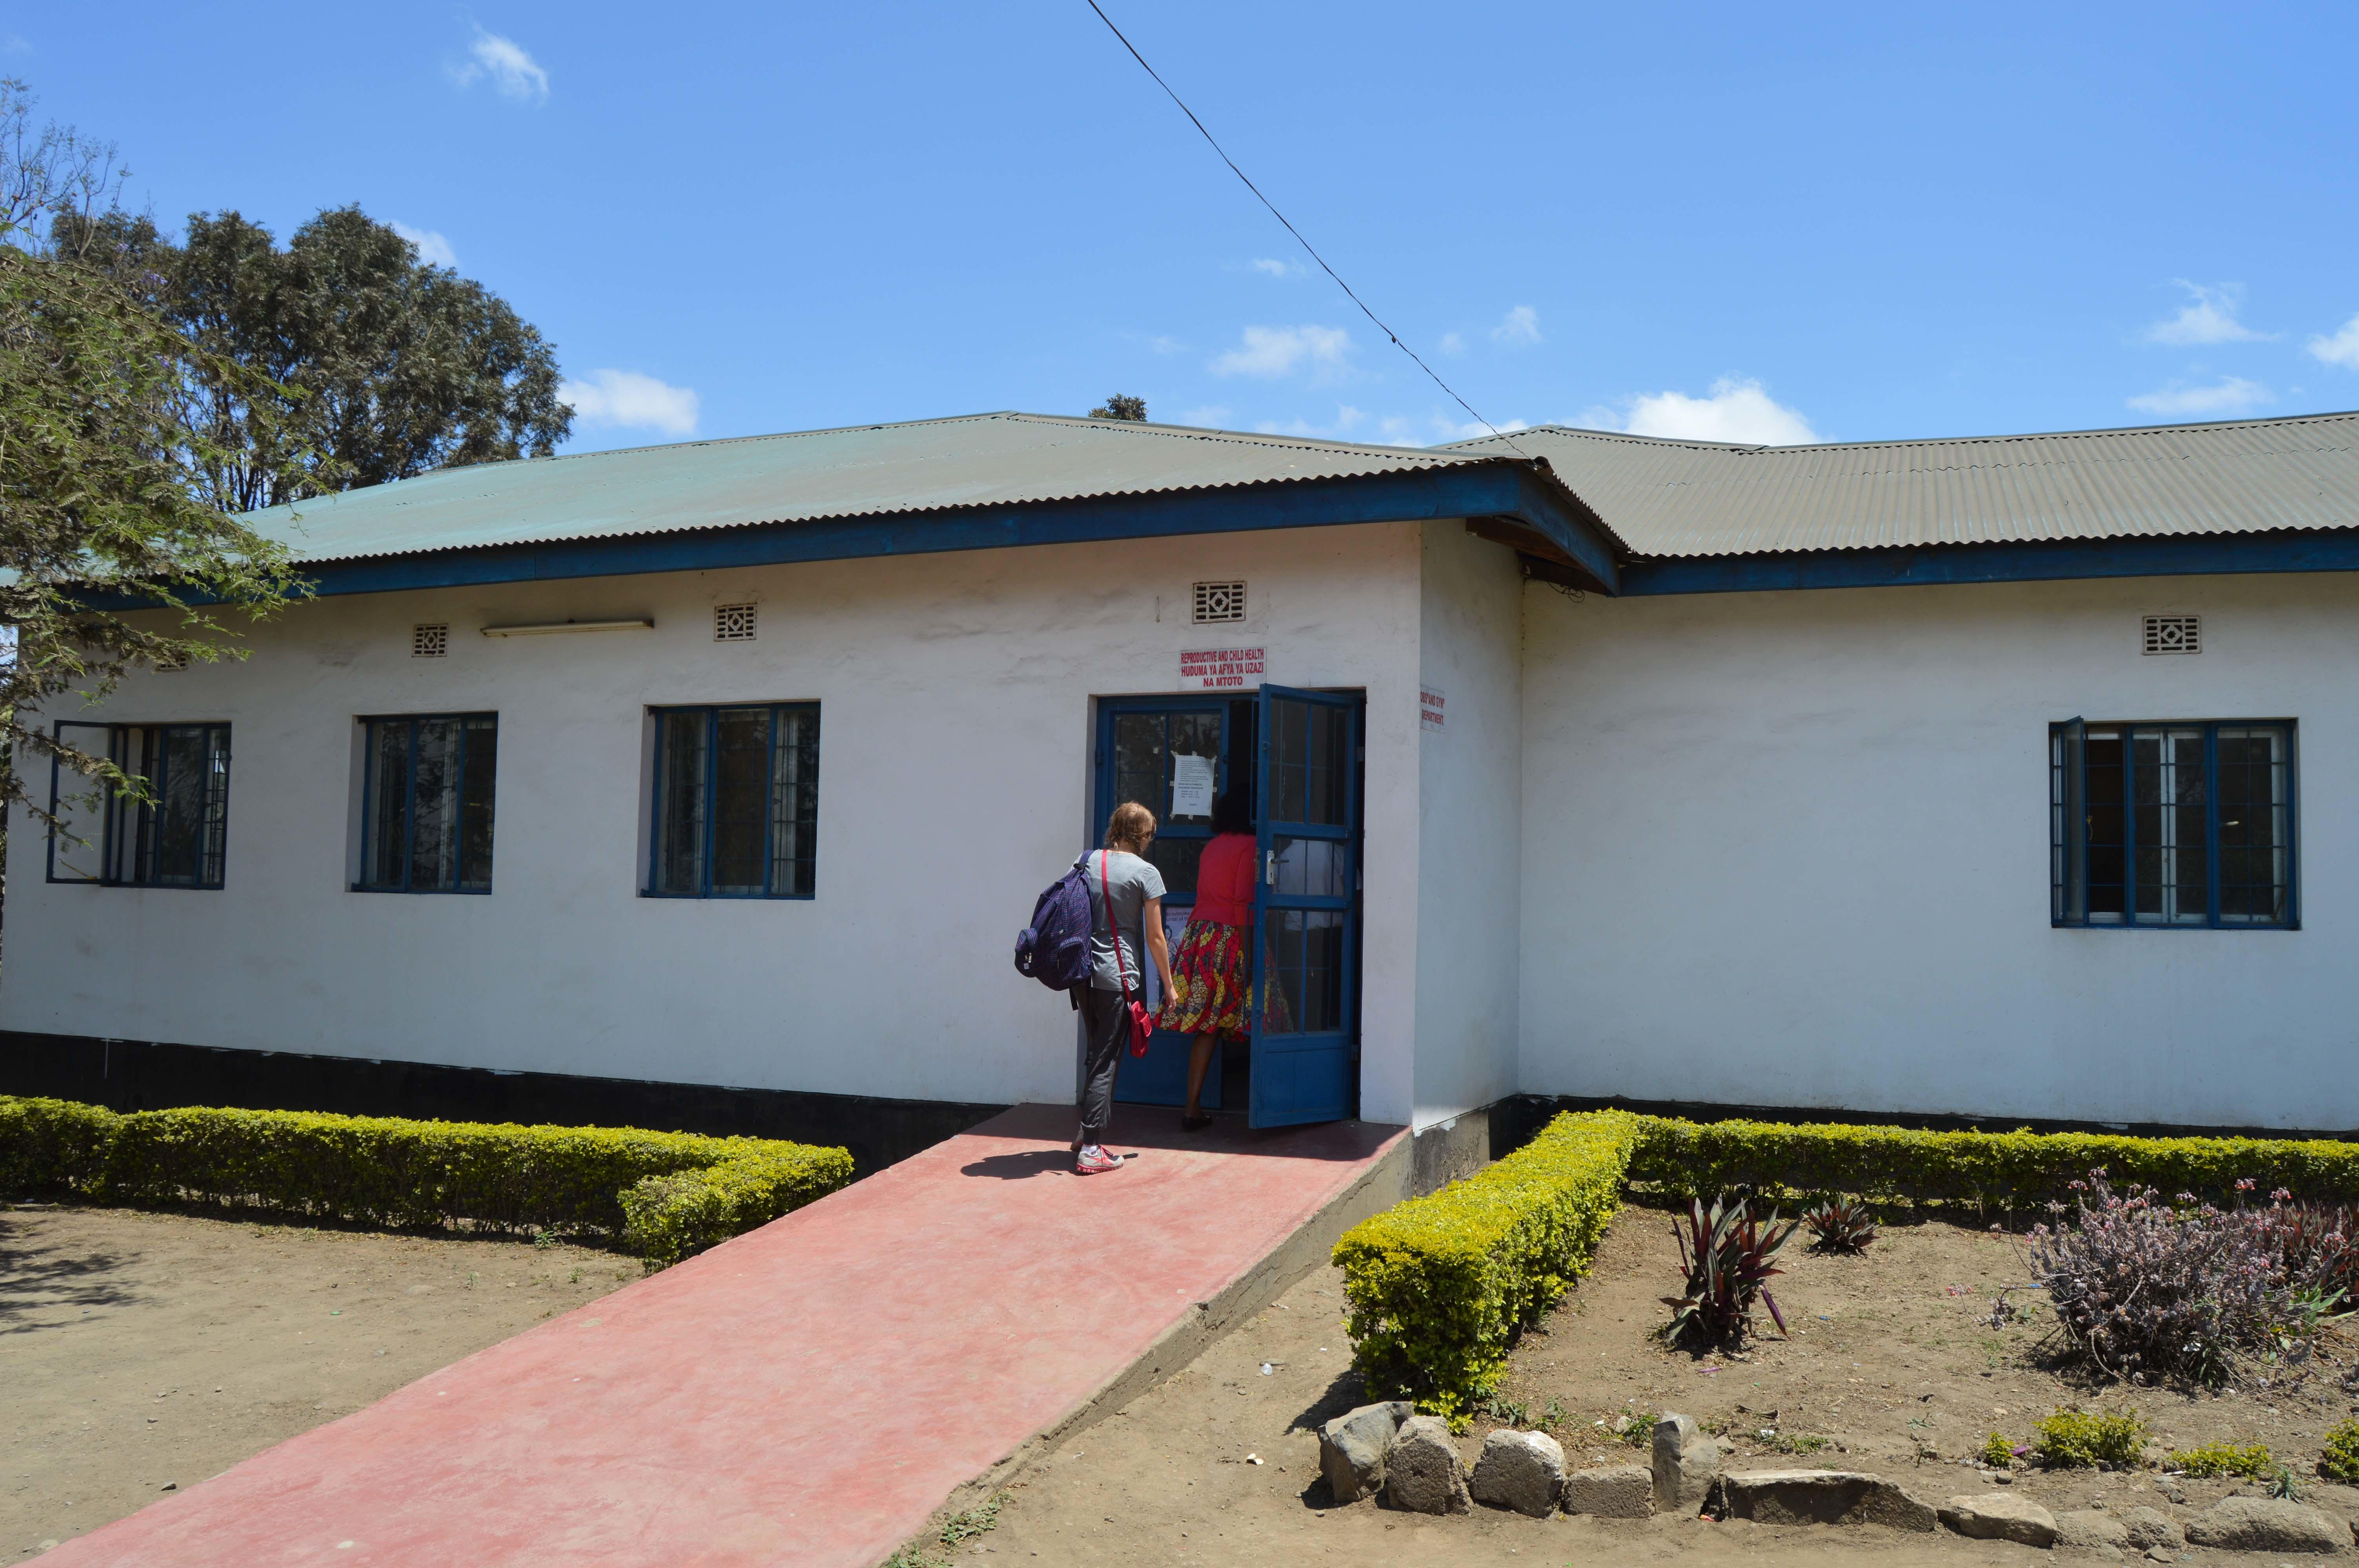 Projects Abroad intern pictures the local maternity hospital she will be working in during her midwifery internship in Tanzania.